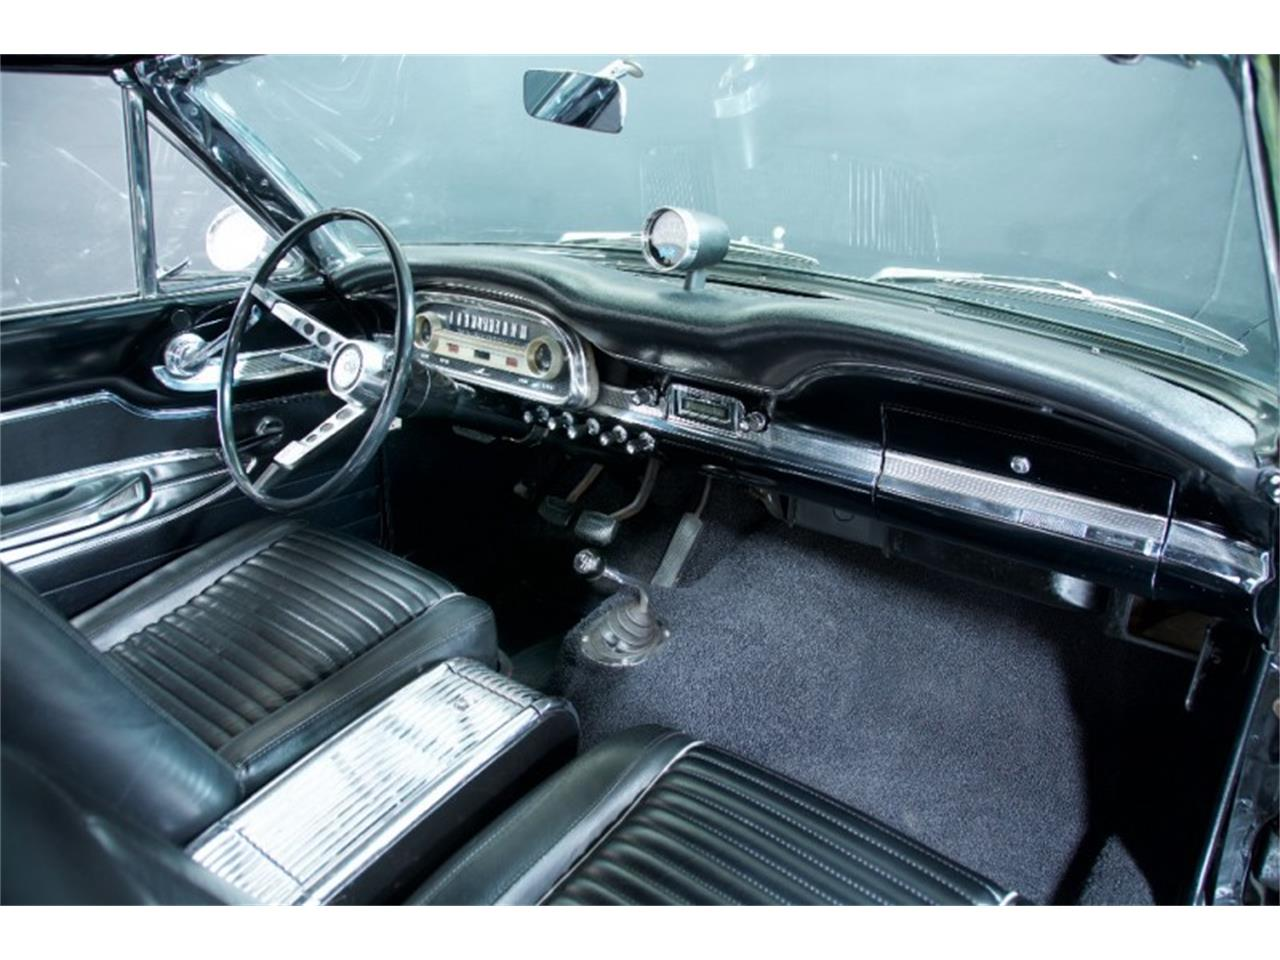 1963 Ford Falcon for sale in Milpitas, CA – photo 69